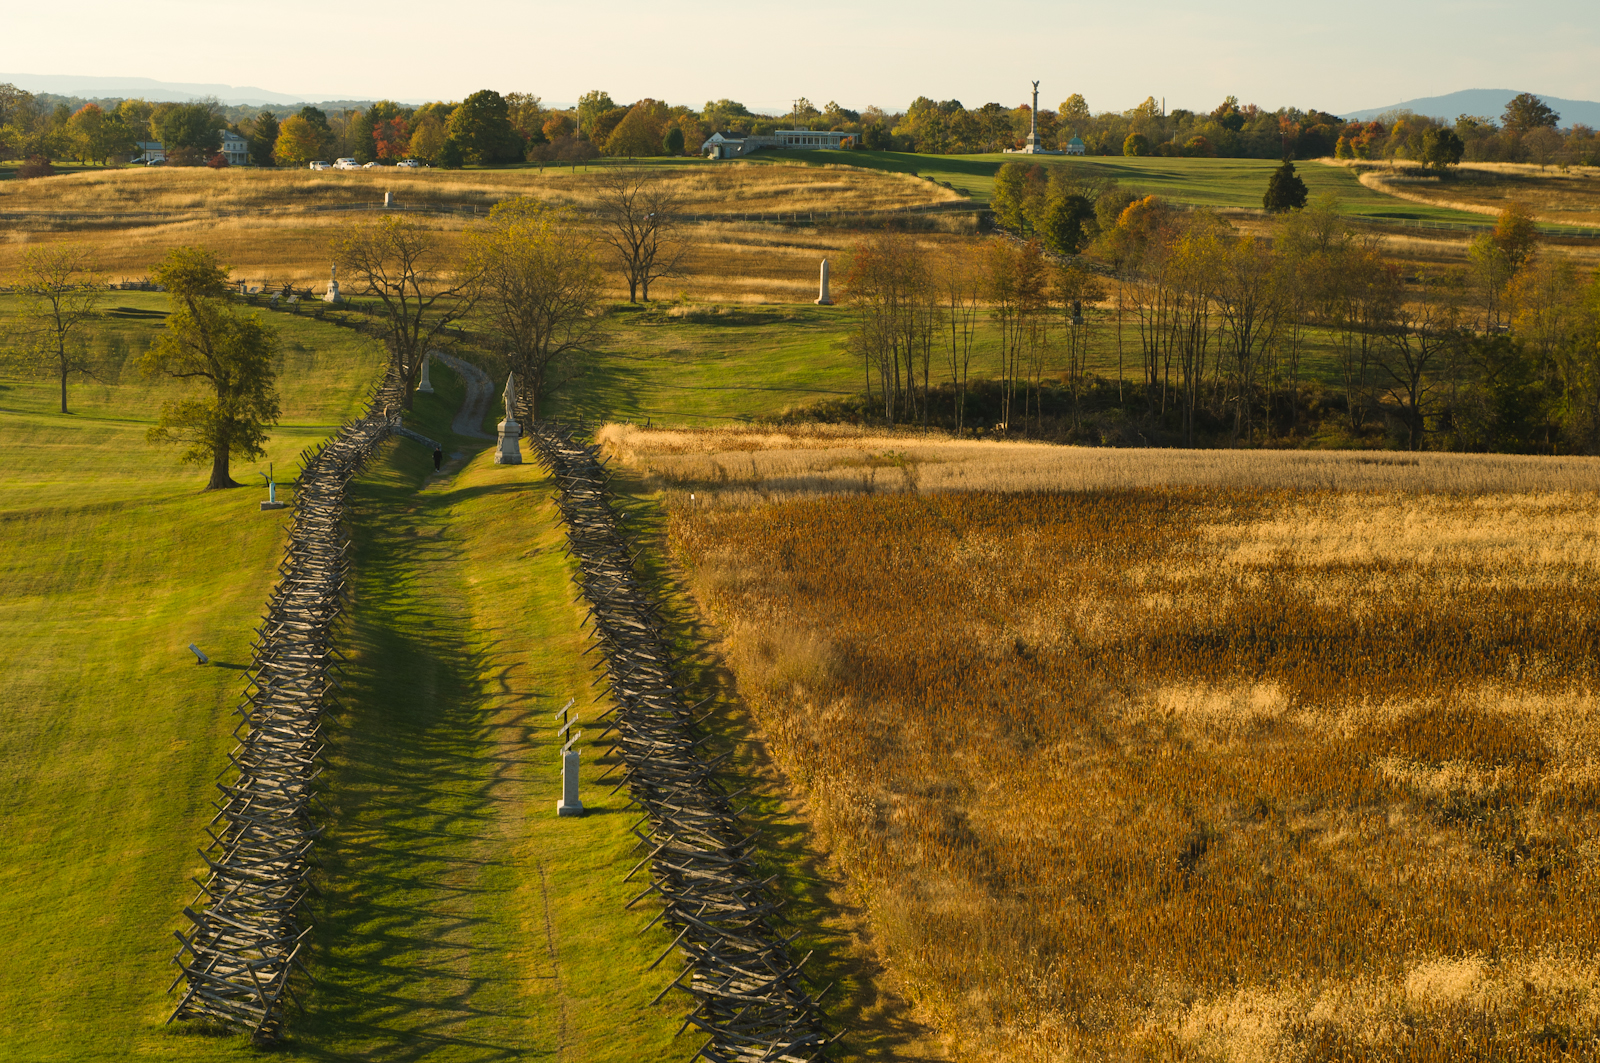 Bloody Lane, Antietam Battlefield, Sharpsburg, Maryland, October